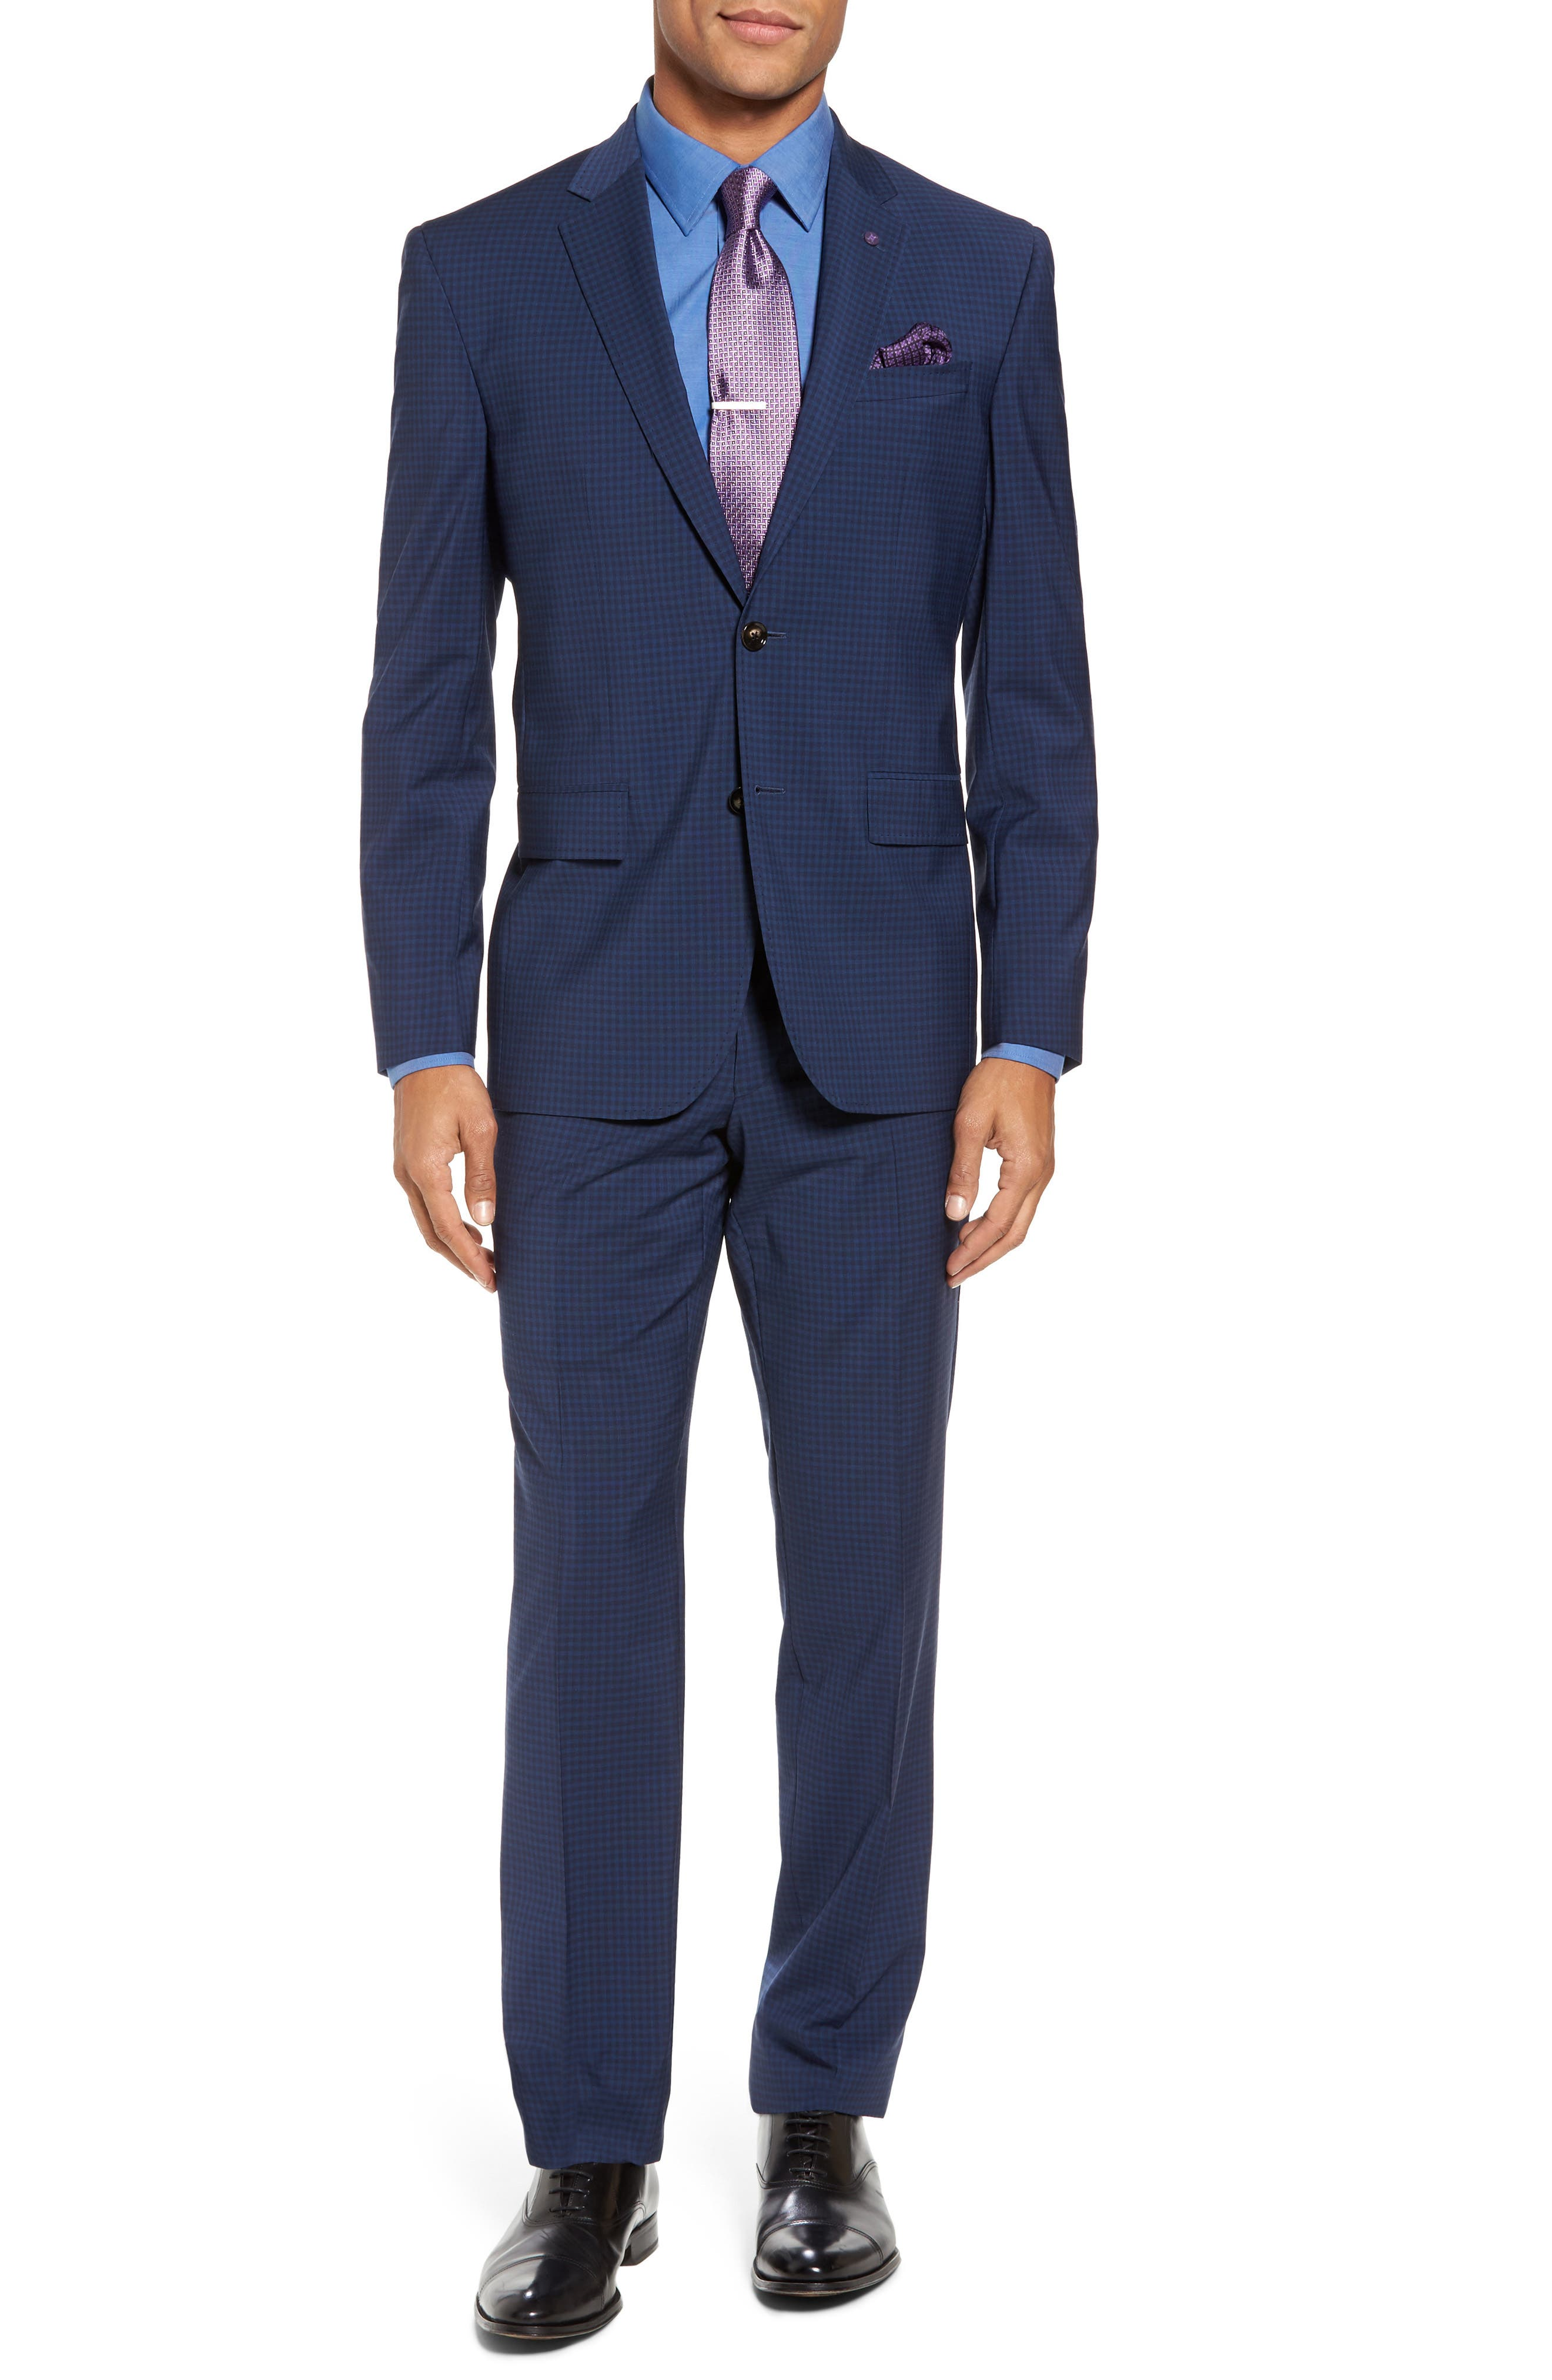 Jay Trim Fit Stretch Wool Suit,                         Main,                         color, Blue